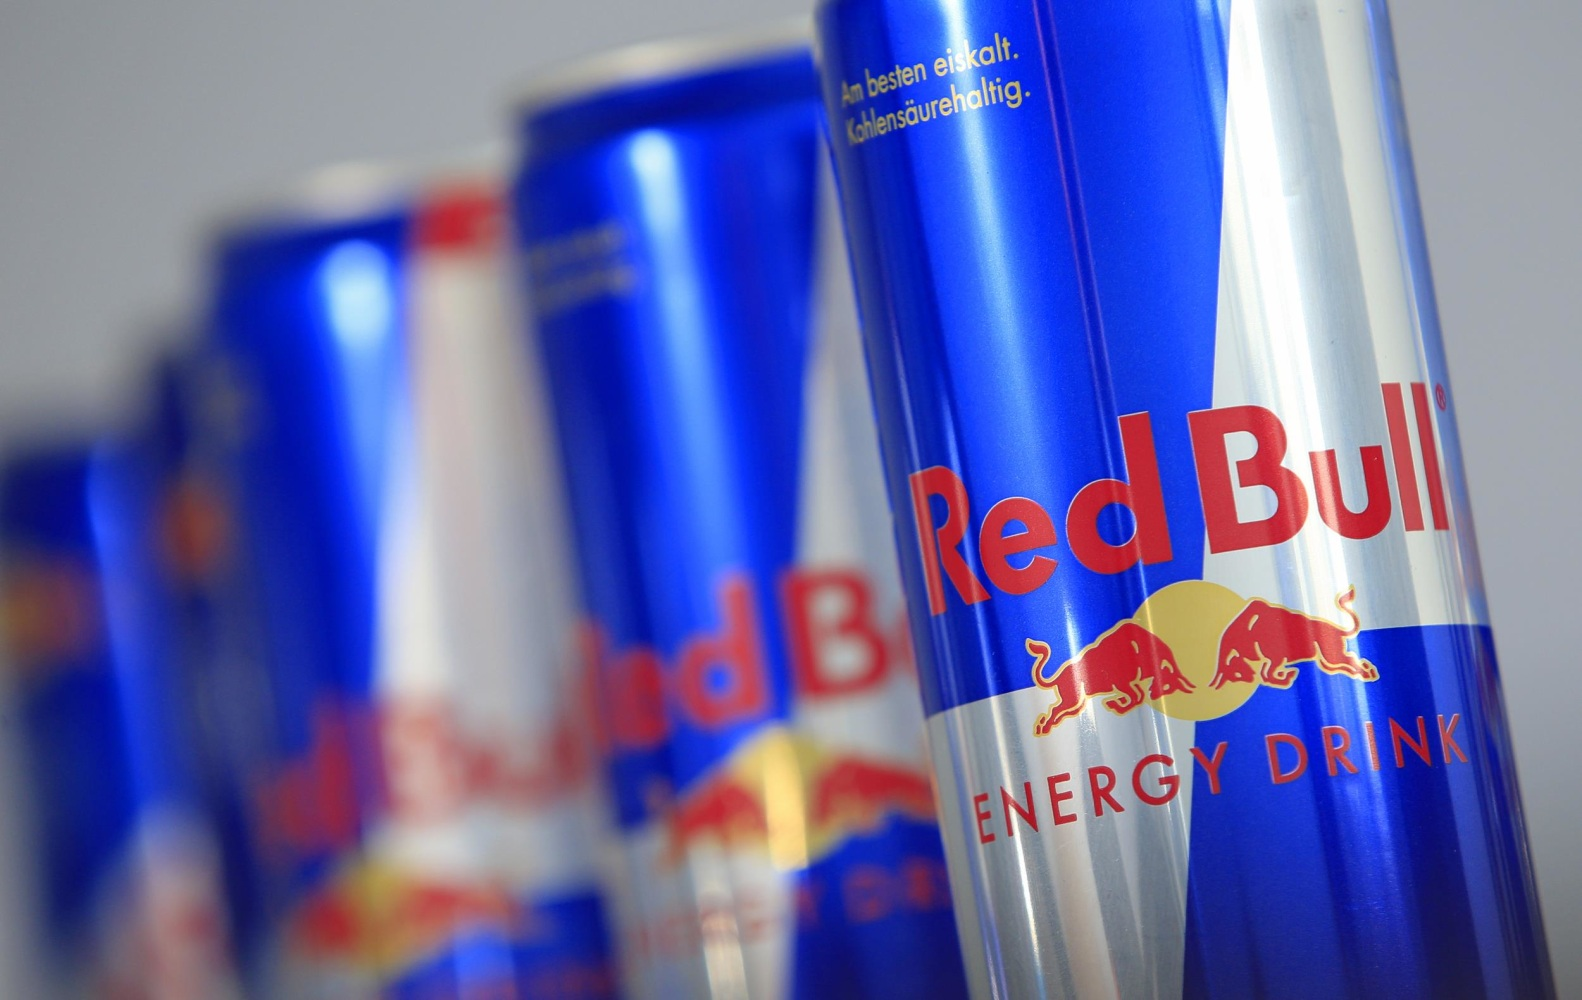 Red Bull Drinkers Can Claim 10 Over Gives You Wings Lawsuit Nbc News